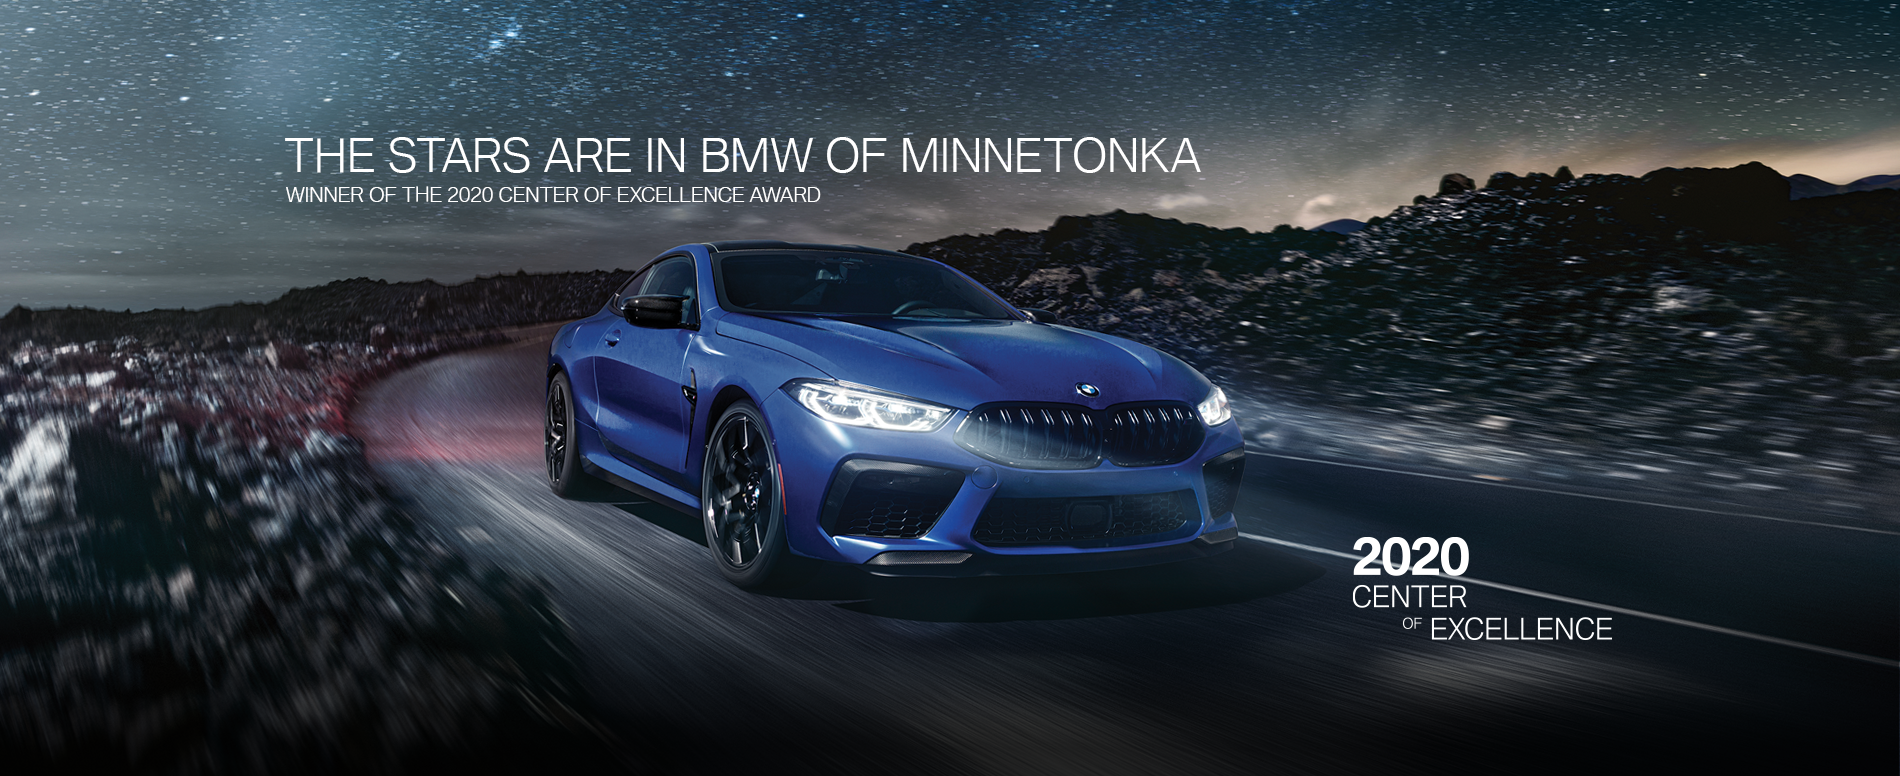 BMW of Minnetonka is a Winner of the Center of Excellence Award